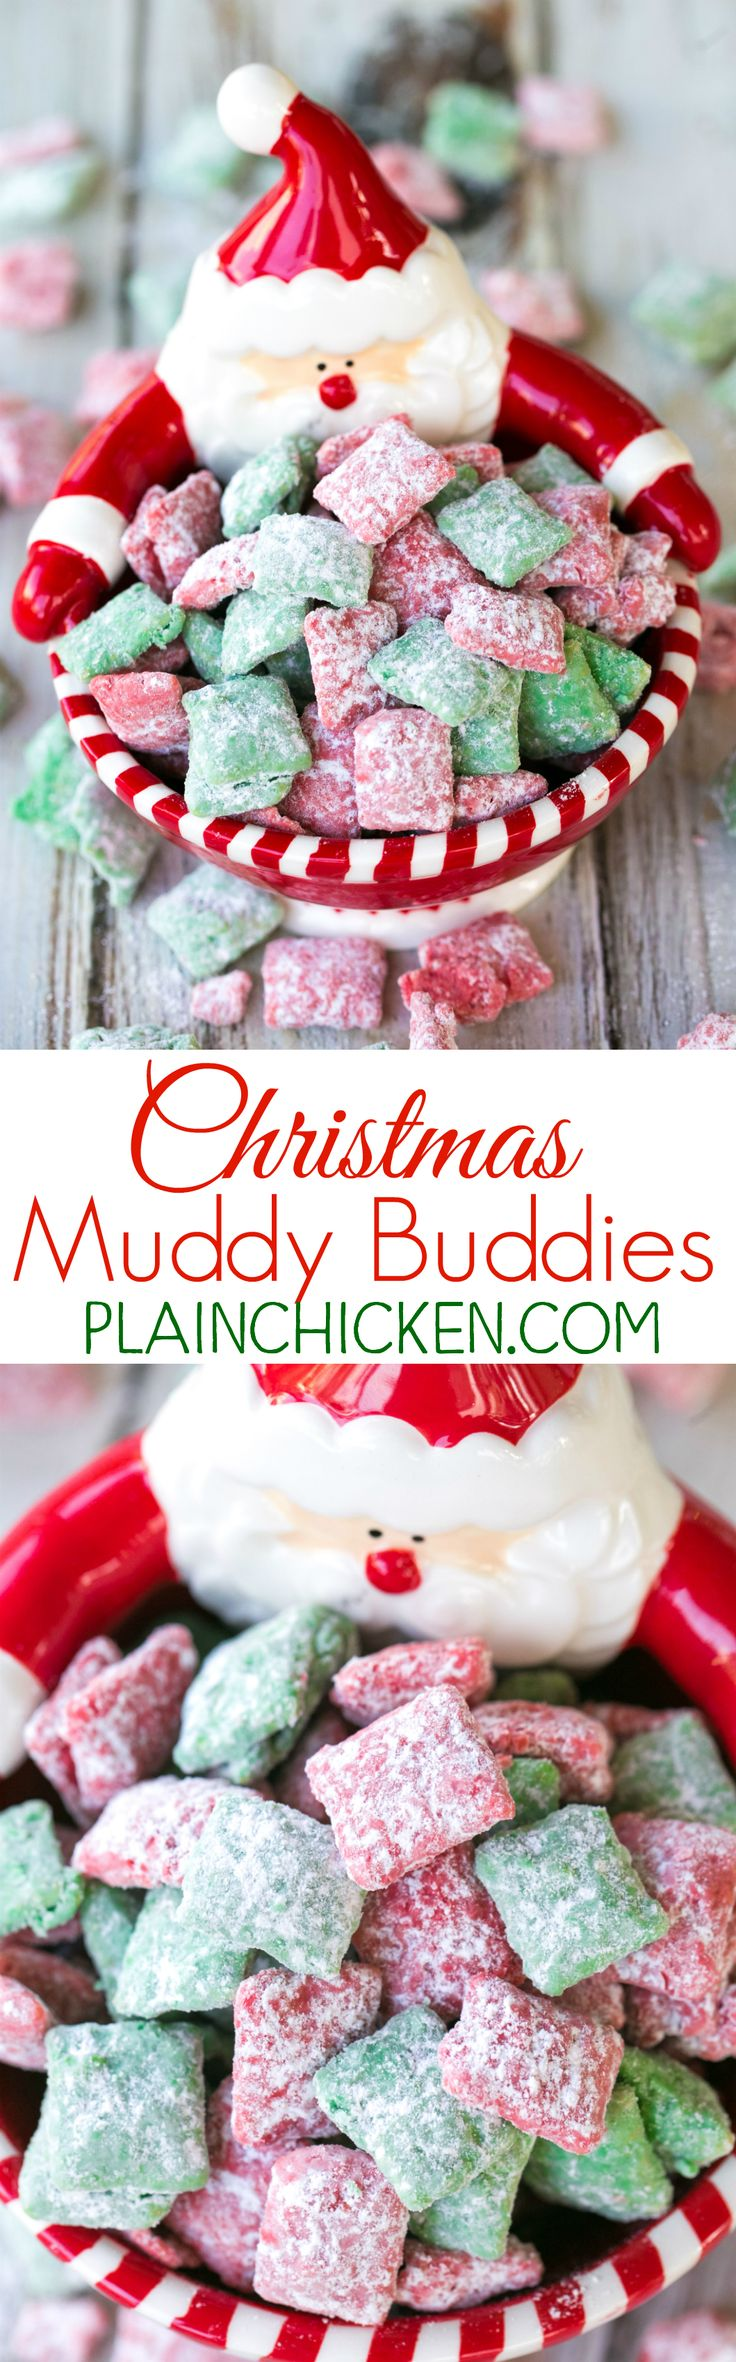 Christmas Muddy Buddies - chex cereal tossed in peanut butter, red and green candy melts and powdered sugar. This stuff is SO good! I am totally addicted to it!! This recipe makes a TON! Makes a great homemade gift for the holidays! (Christmas Kids Recipes)